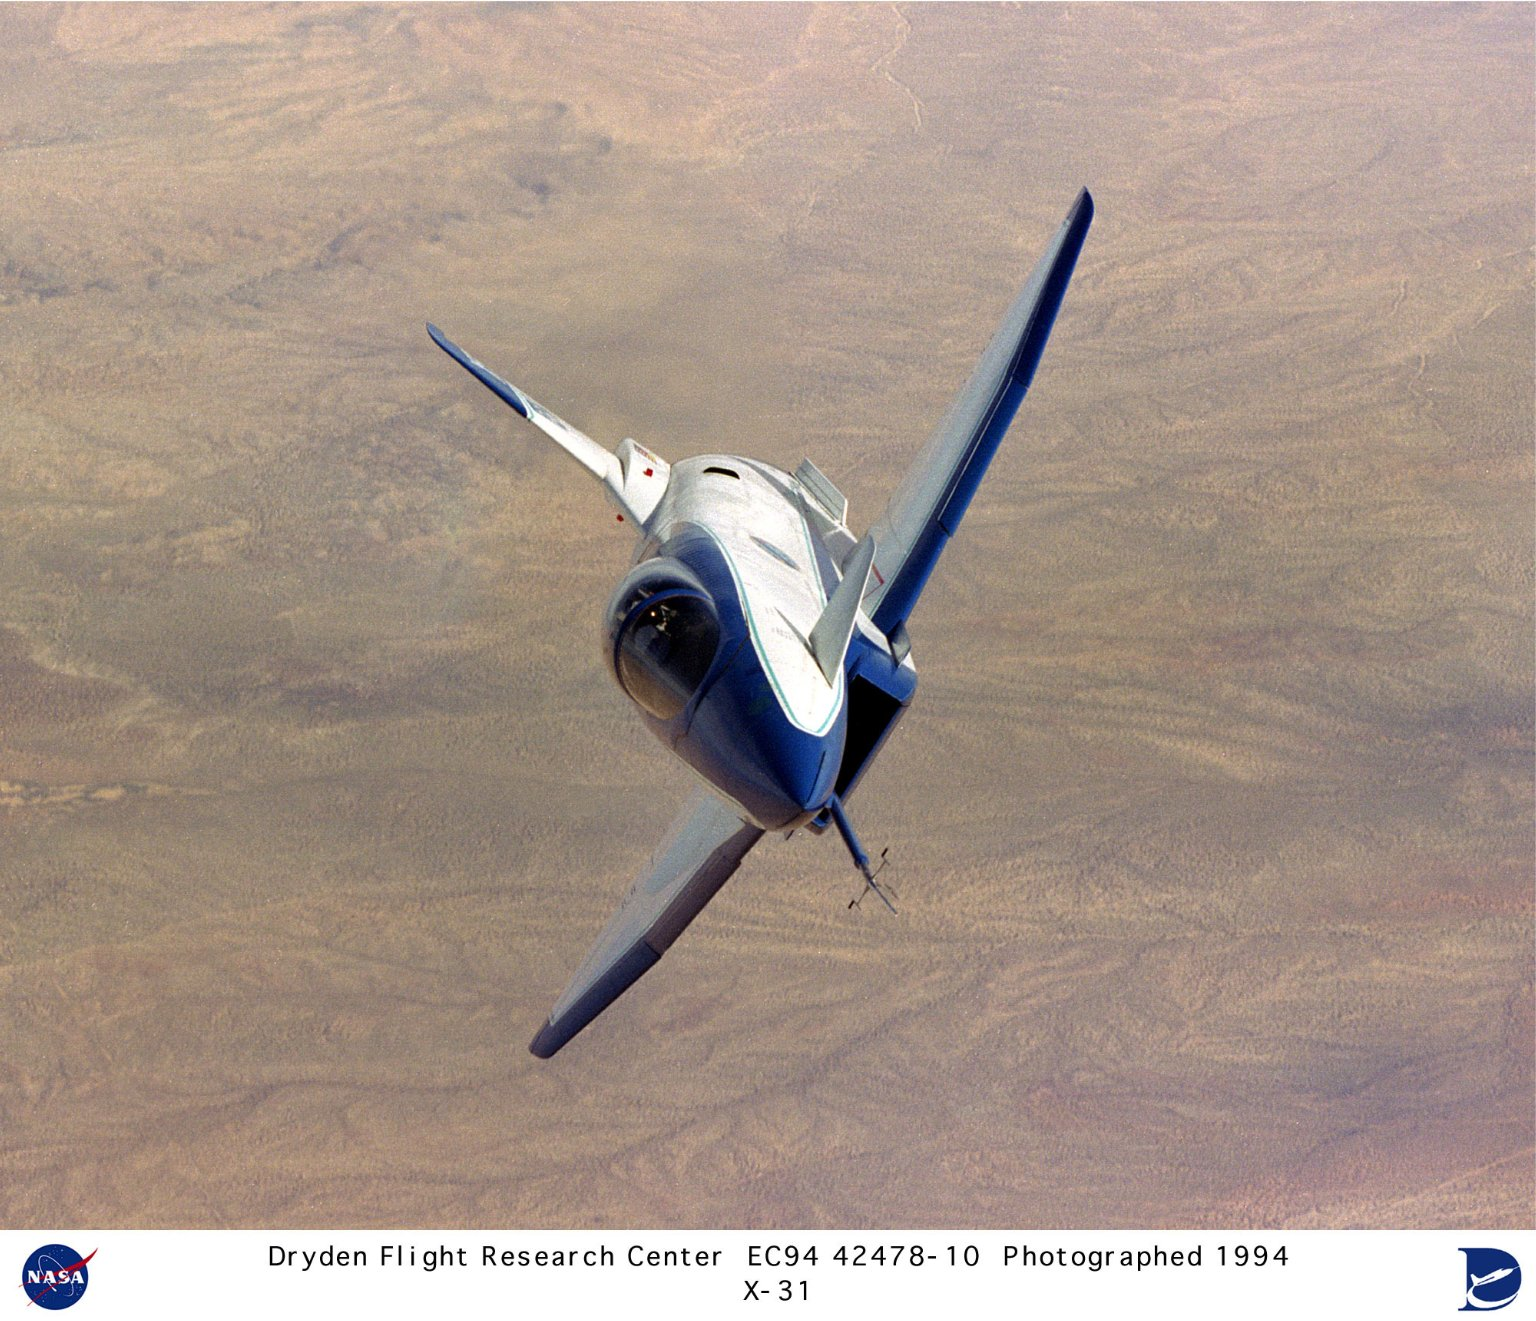 X-31 in Flight over Edwards AFB